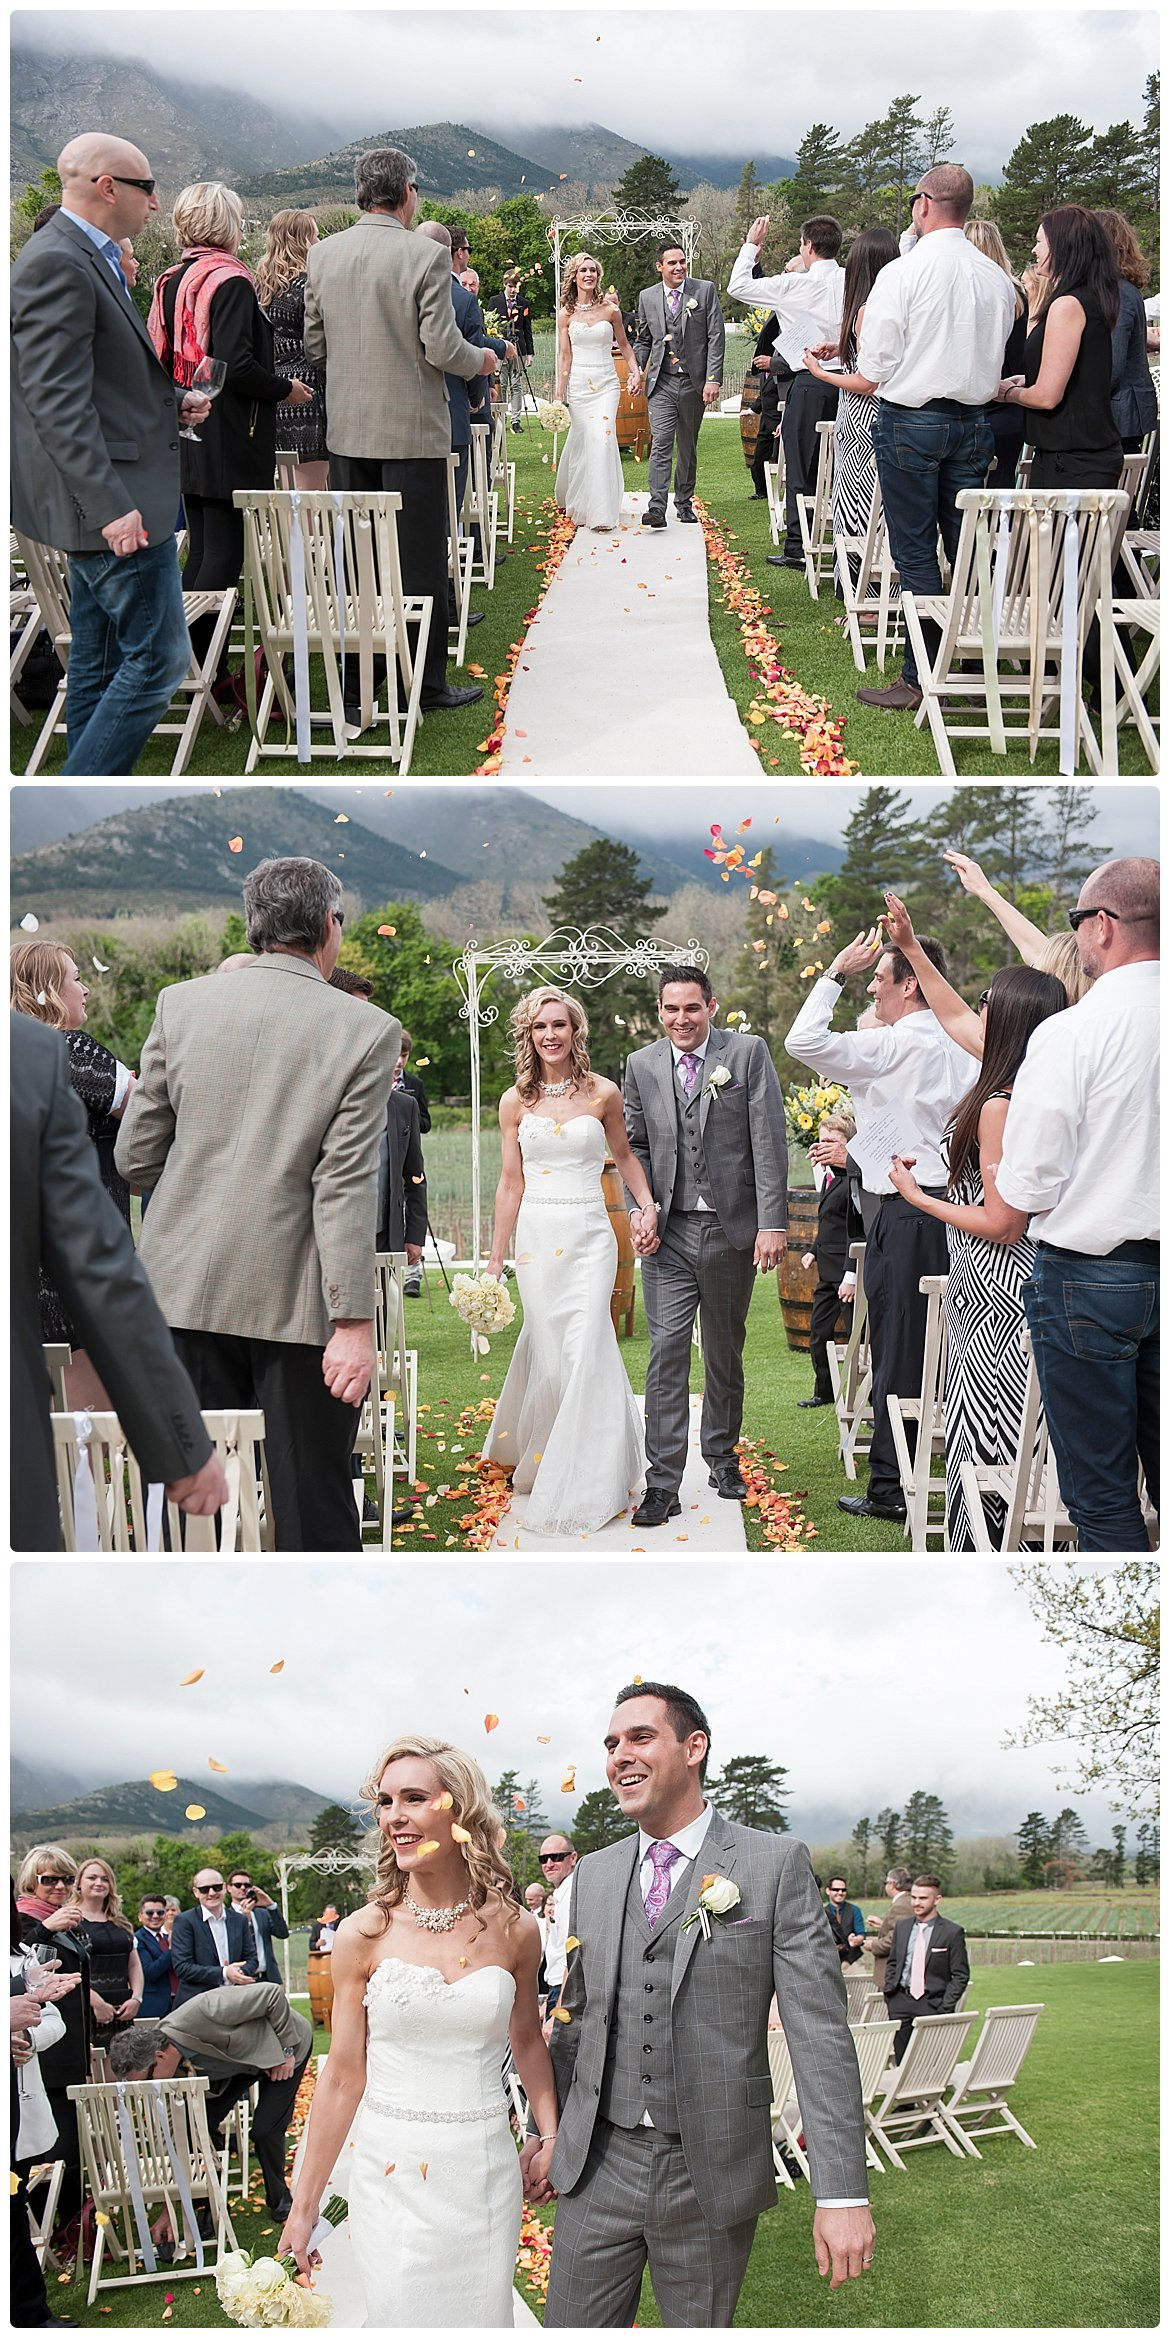 rickety-bridge-weddings-joanne-markland-photography-WS-026